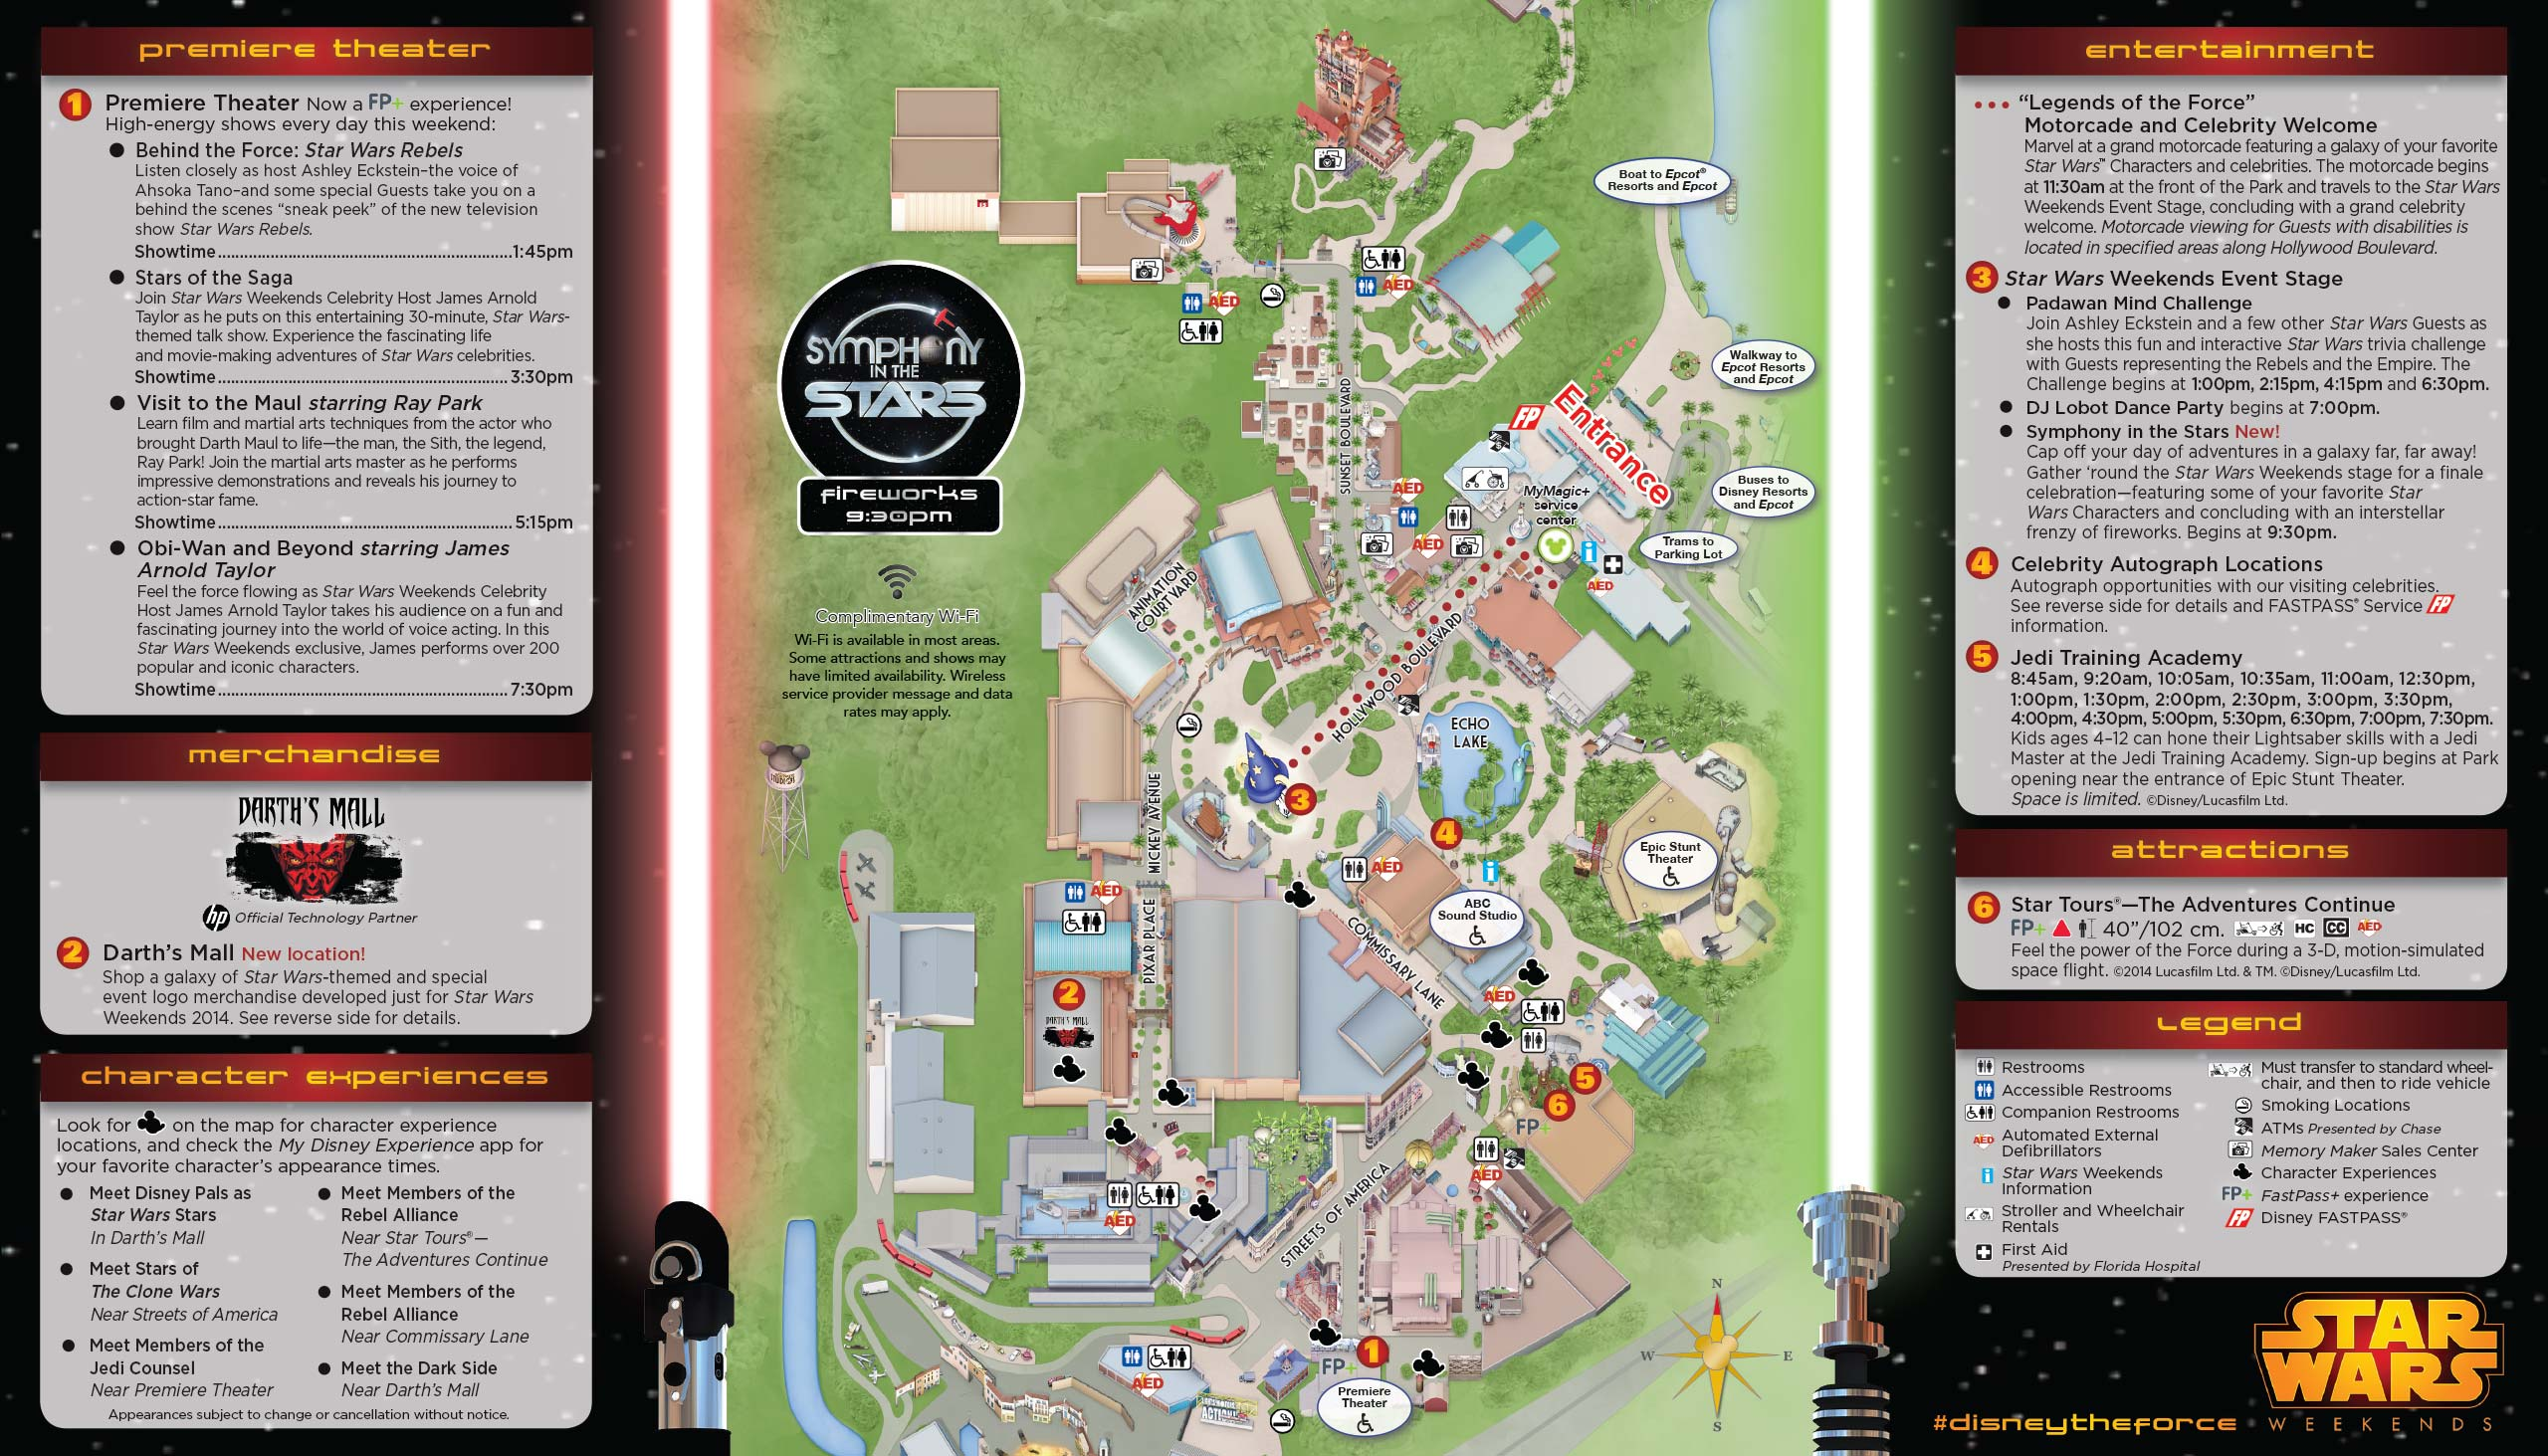 2014 Star Wars Weekends May 30 - June 1 Weekend 3 guide map back